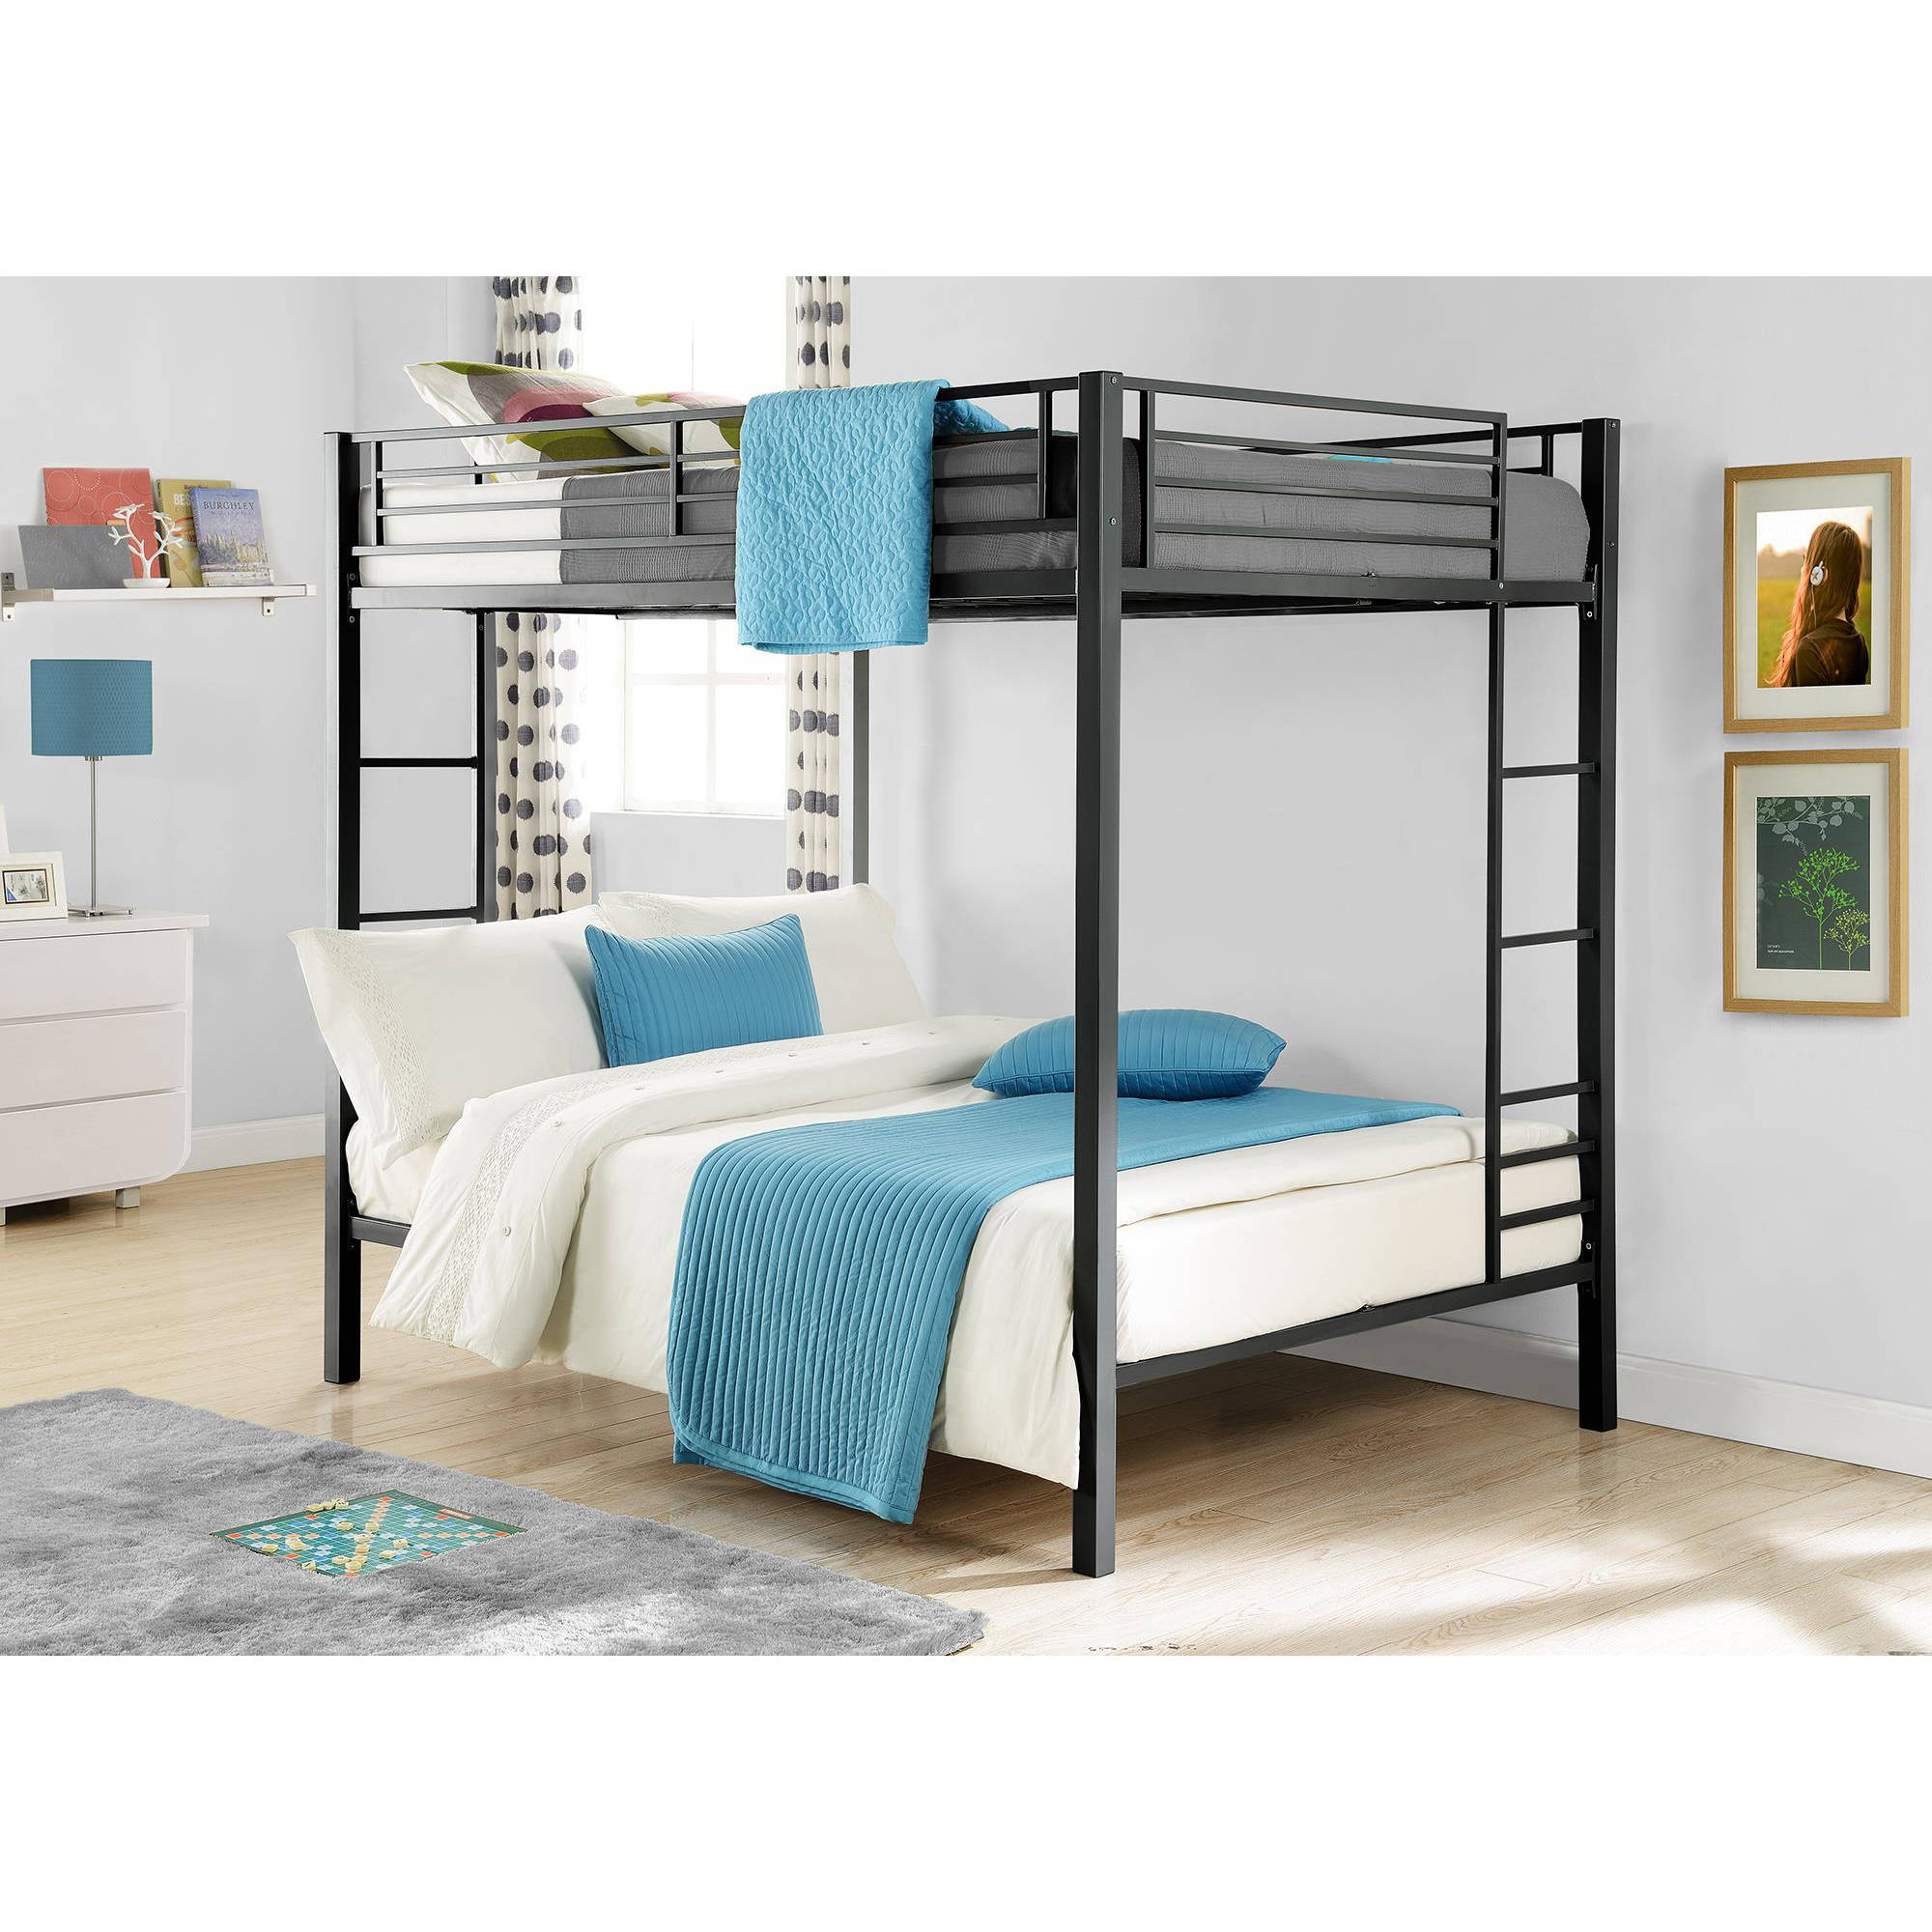 Bunk Beds On Sale Kids Full Size Over Double Bedroom Loft Furniture ...